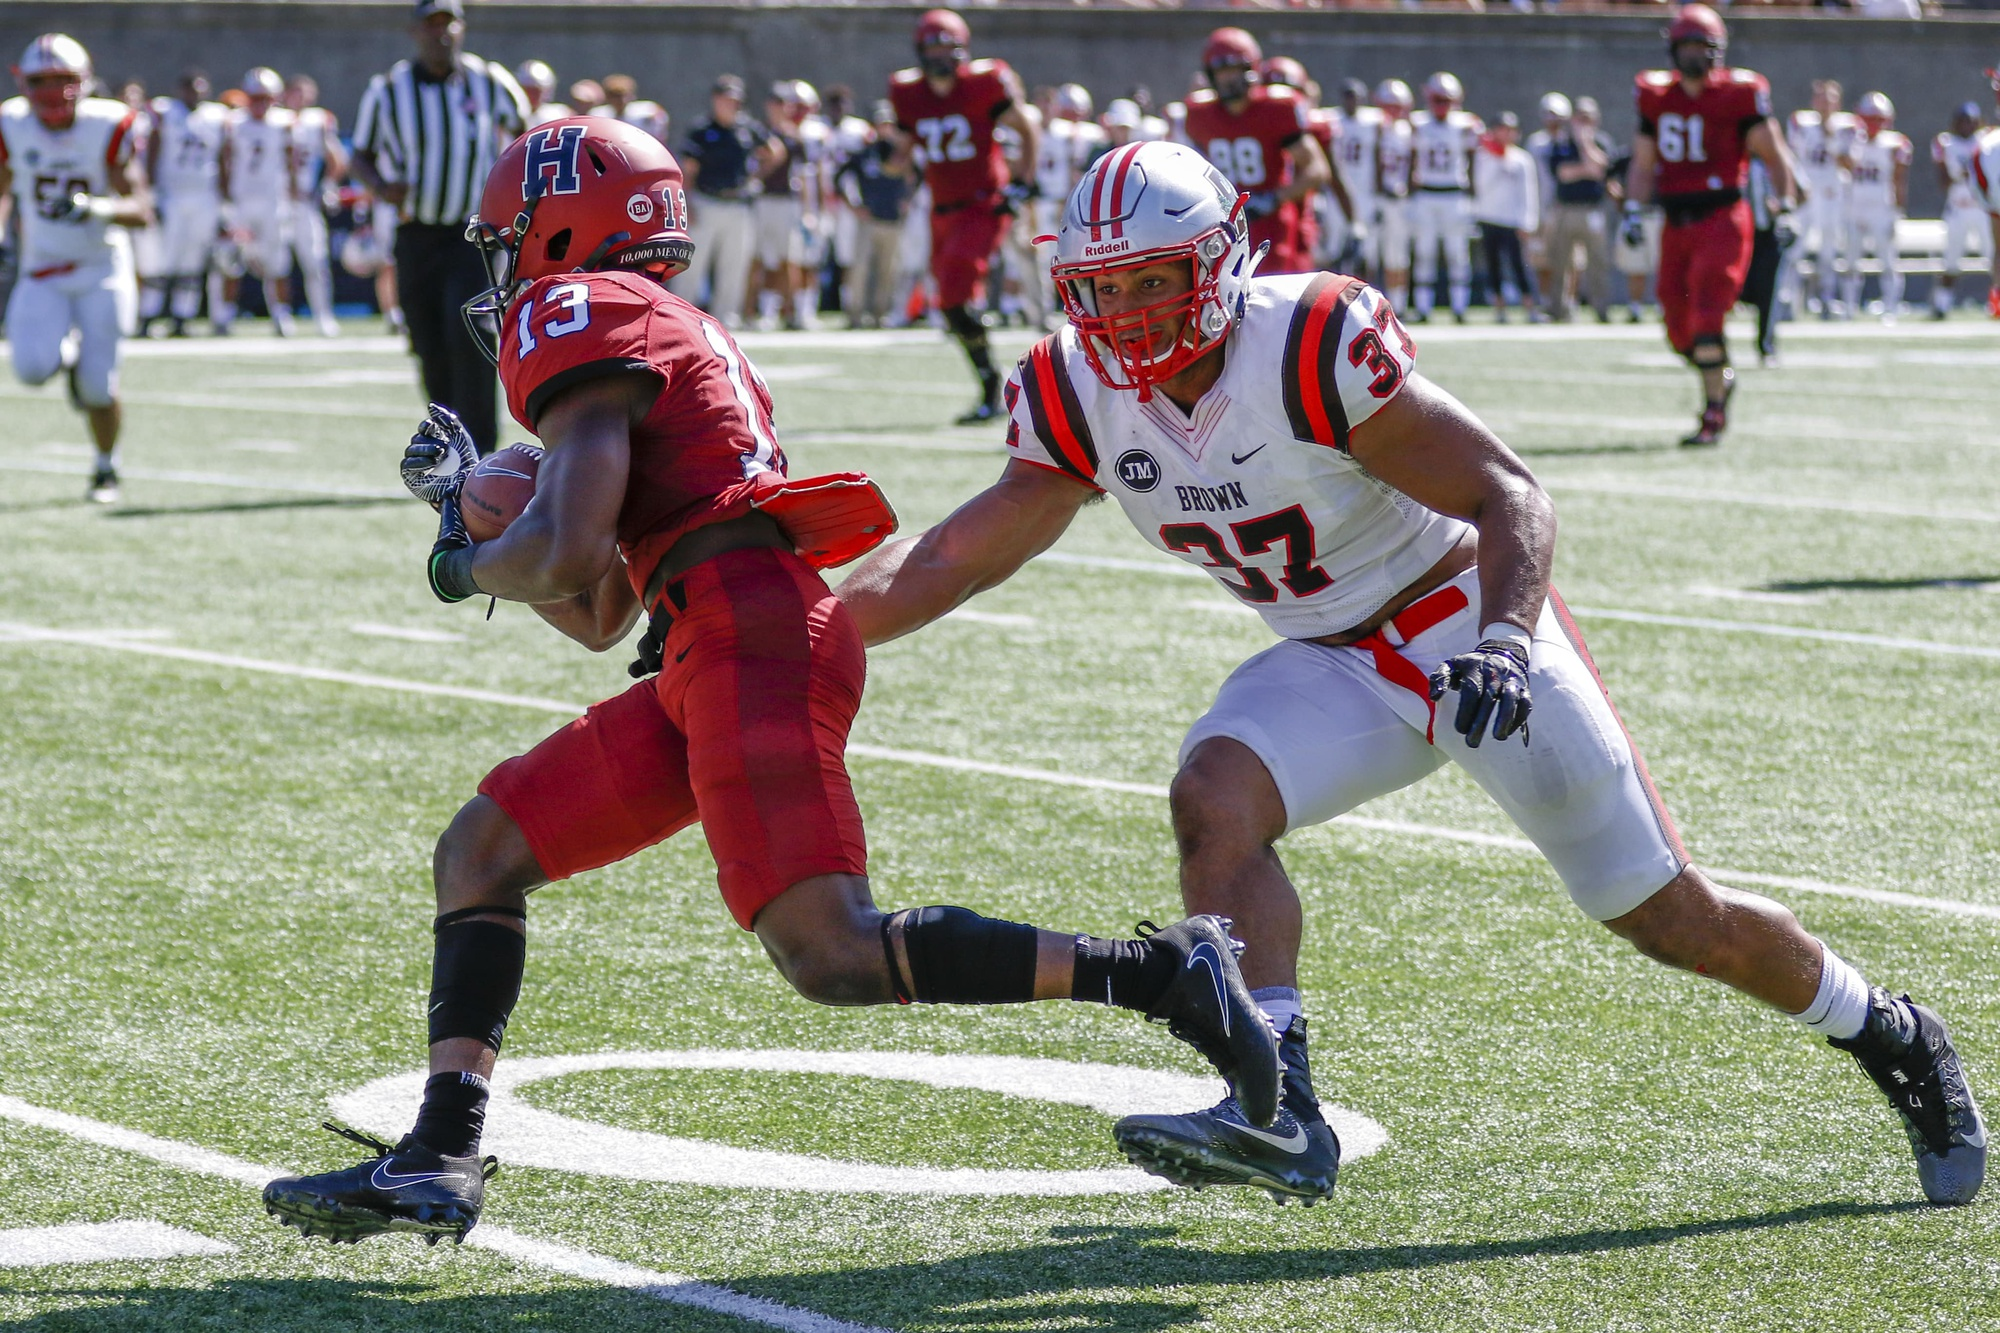 Junior wide receiver Adam Scott aims to evade a tackle. He led Harvard with 79 receiving yards on five catches.